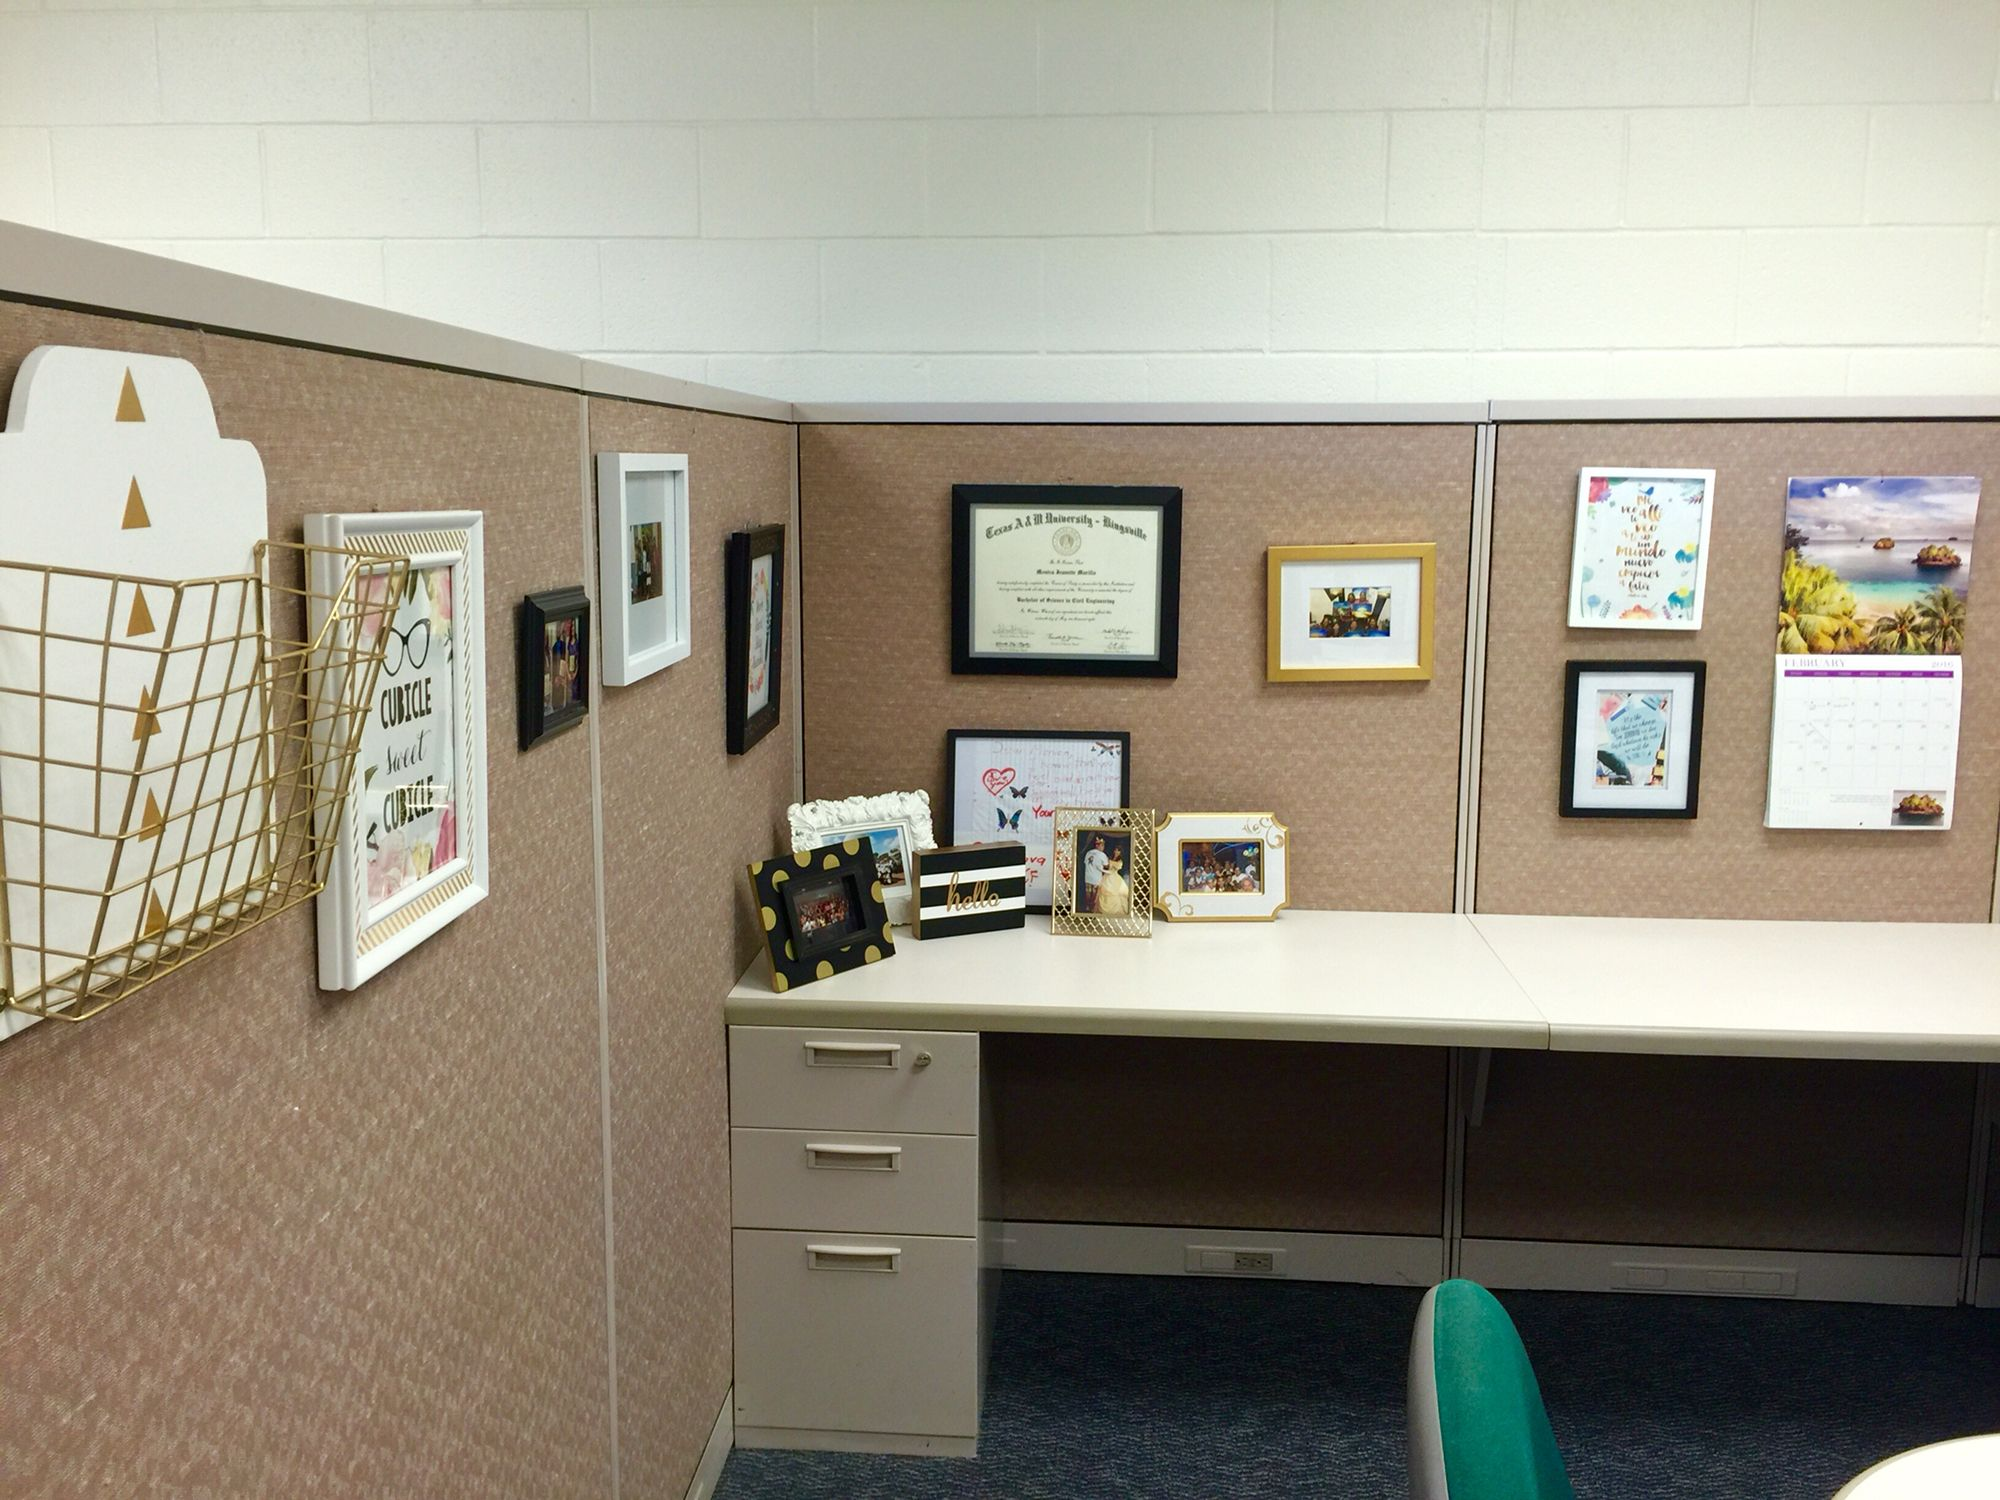 decorating office desk. My Cubicle Decor And Organization: Going For A White, Black, Gold Theme Decorating Office Desk